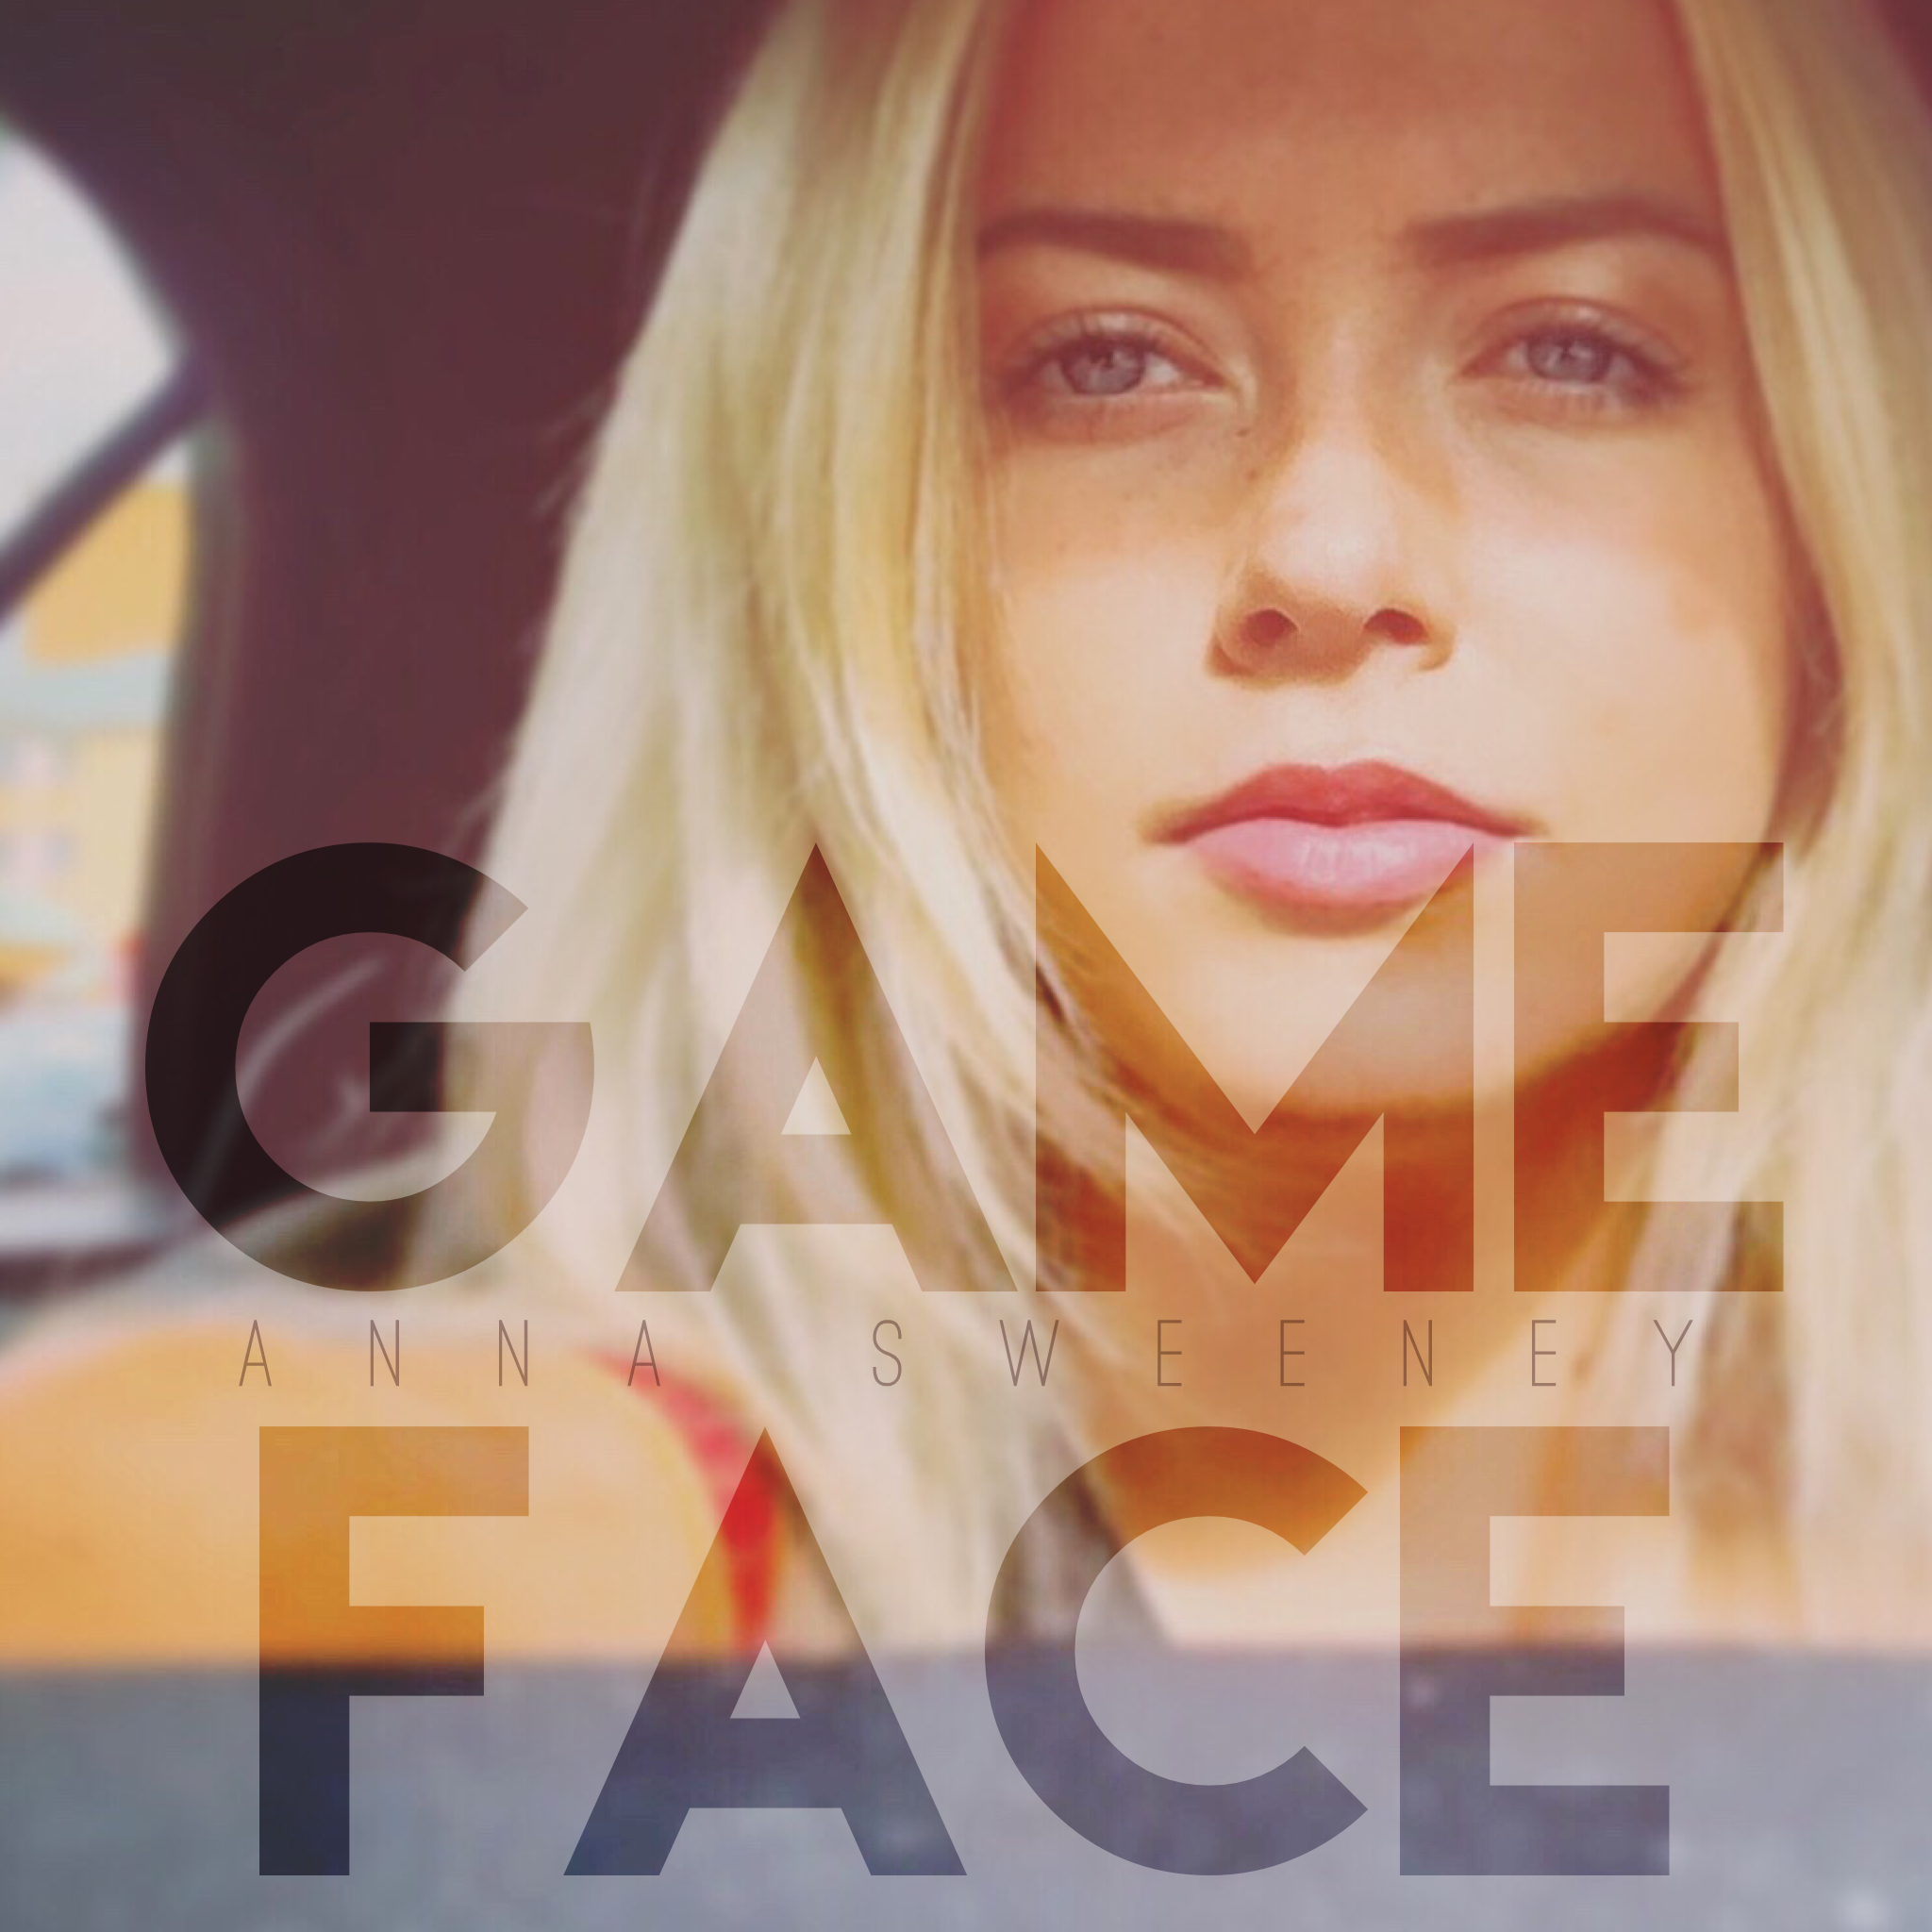 Anna Sweeney talks about her new album Game Face